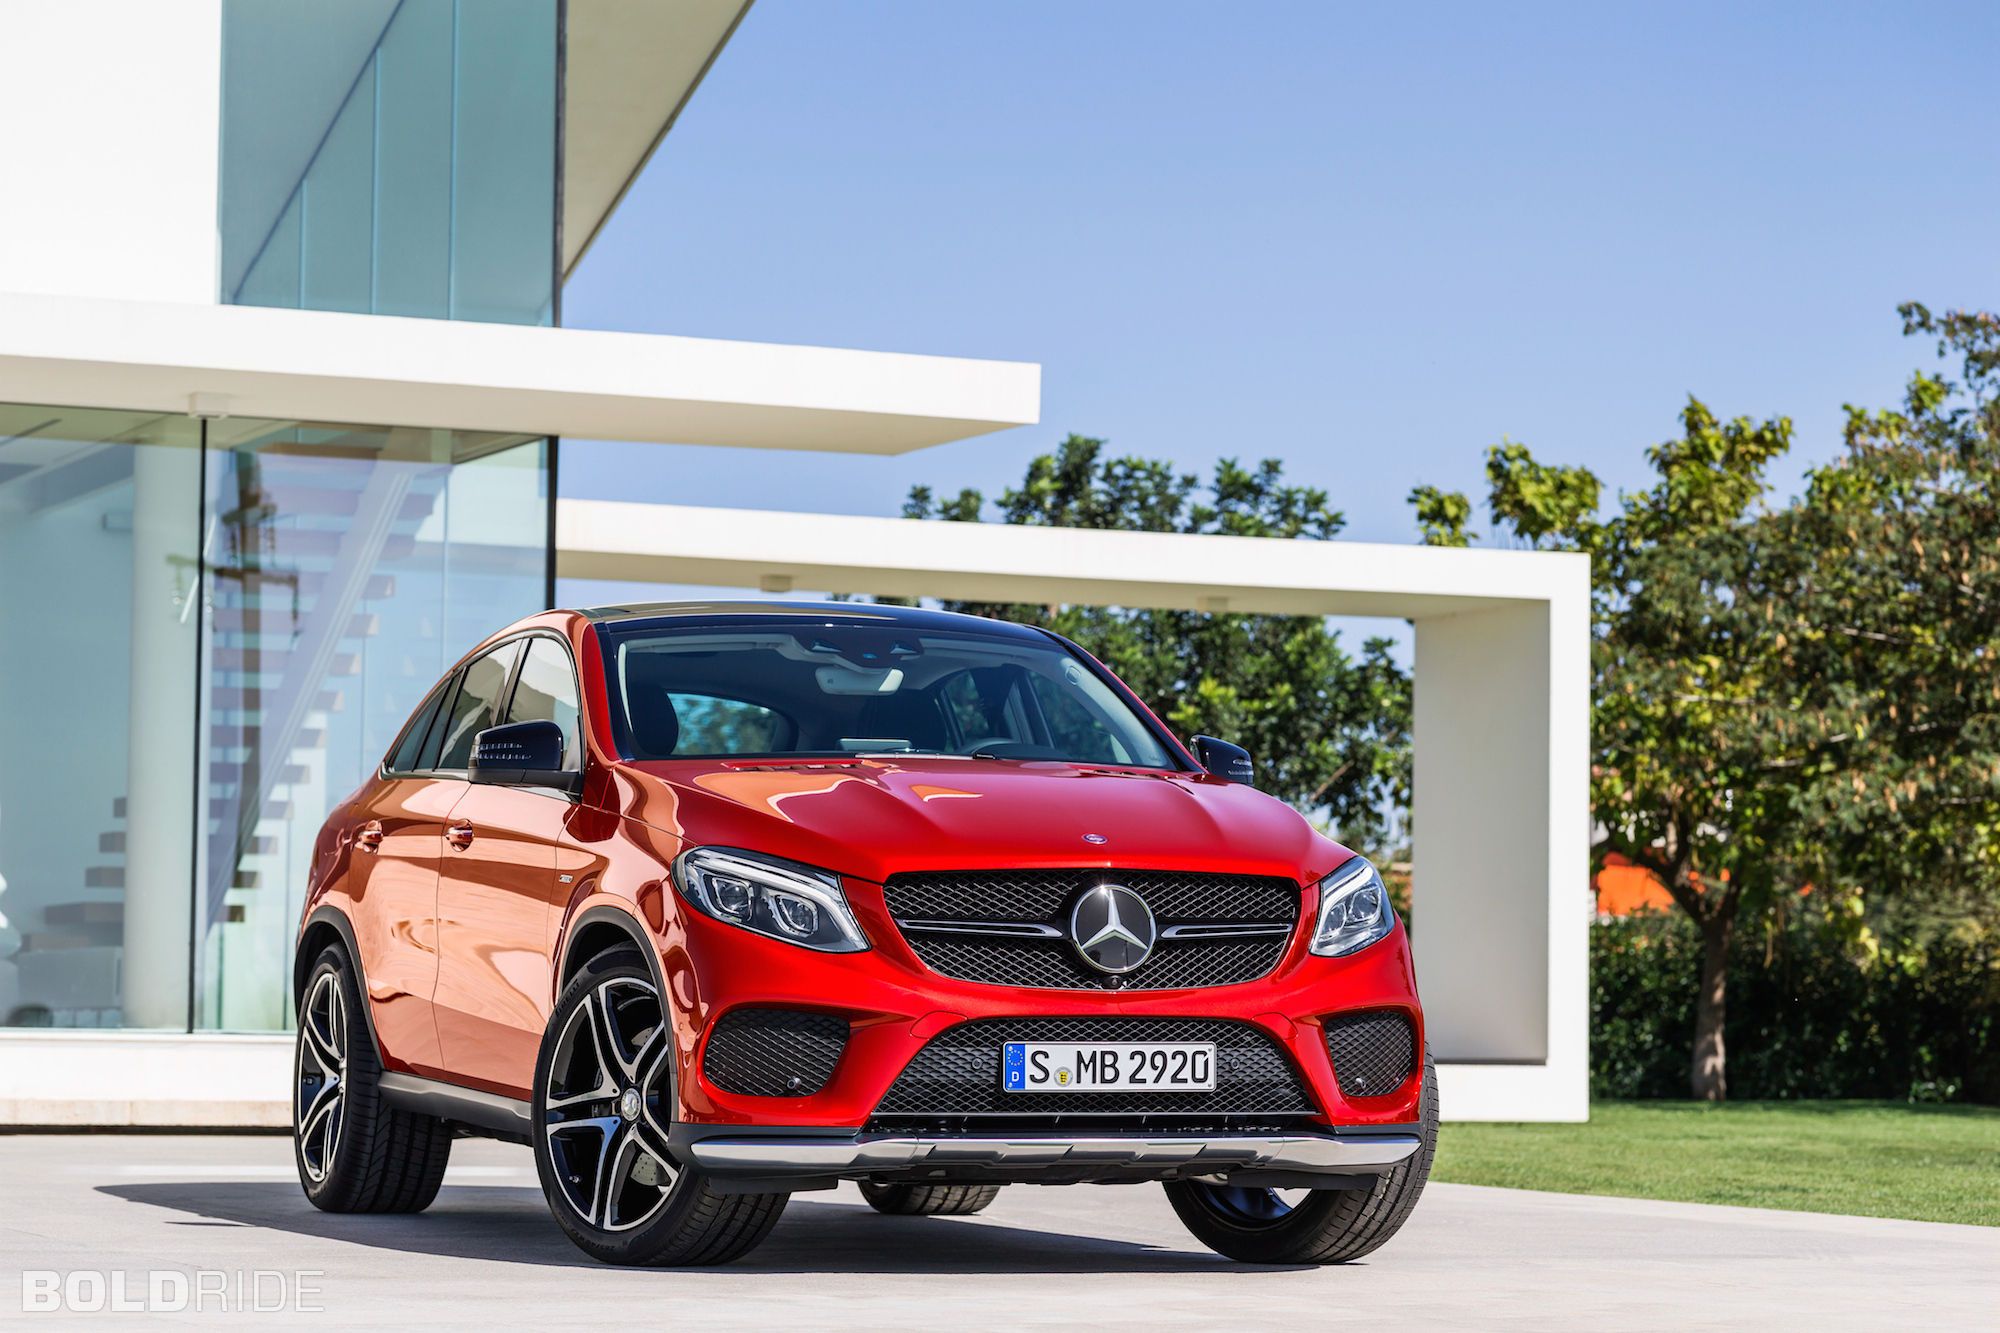 Mercedes Benz GLE Coupe Backgrounds